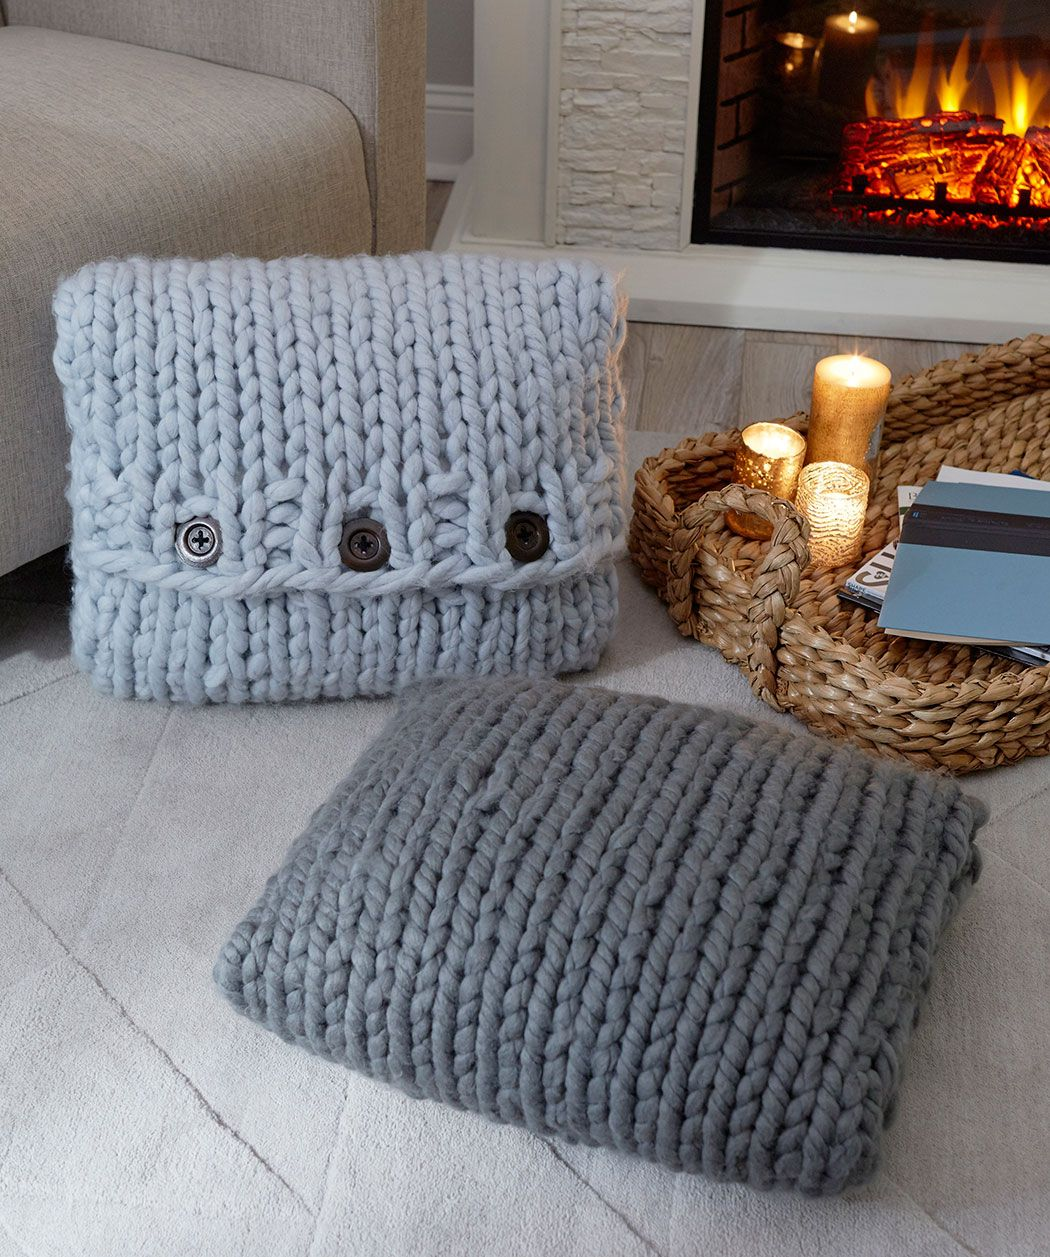 Hygge look book red heart crochet projects pinterest hygge pillows are especially good at helping your body to find the perfect comfort position this pillow pattern is also easy enough to use for knitting to relax bankloansurffo Gallery